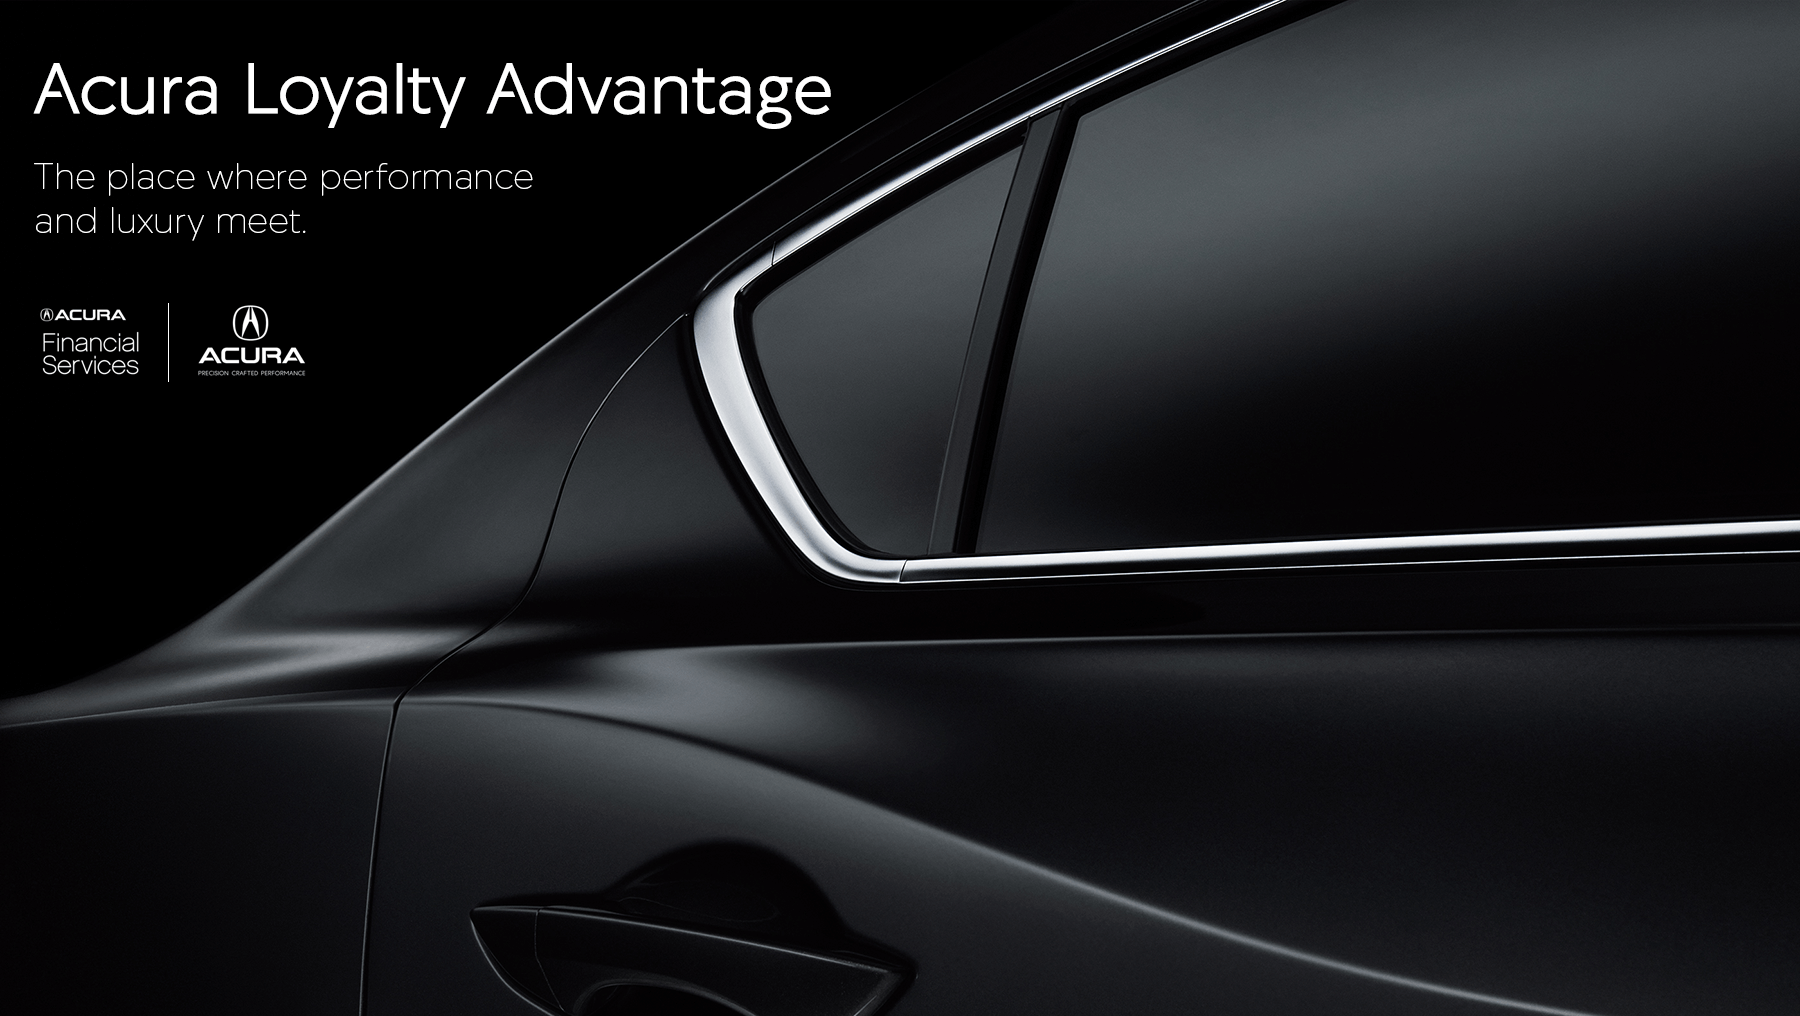 Acura Loyalty Advantage Puget Sound Acura Dealers Slider